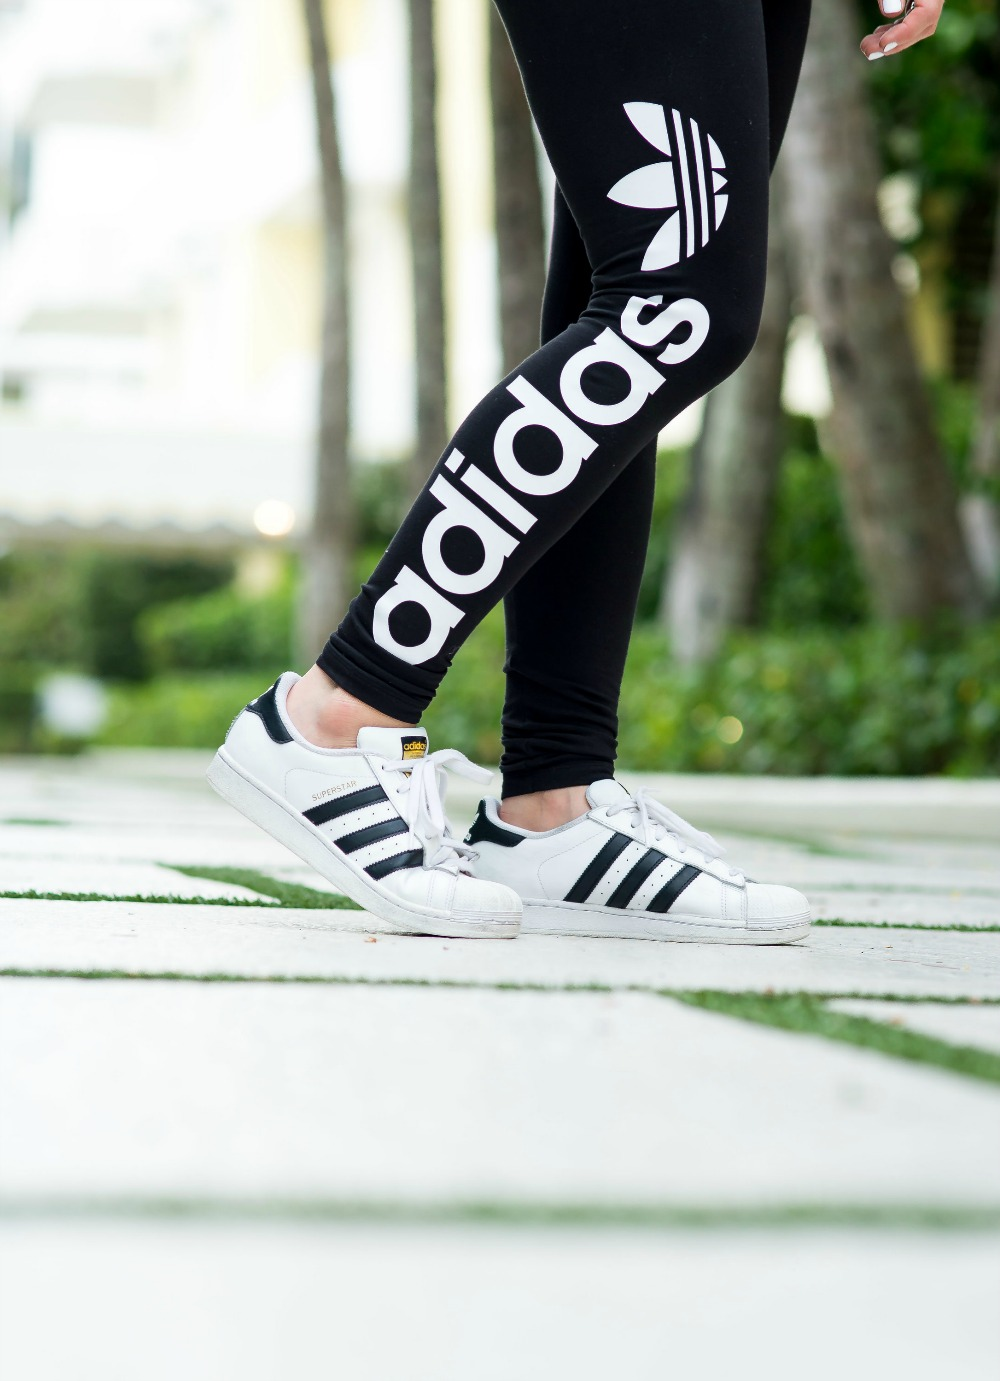 Adidas superstars and leggings for casual style // the modern savvy